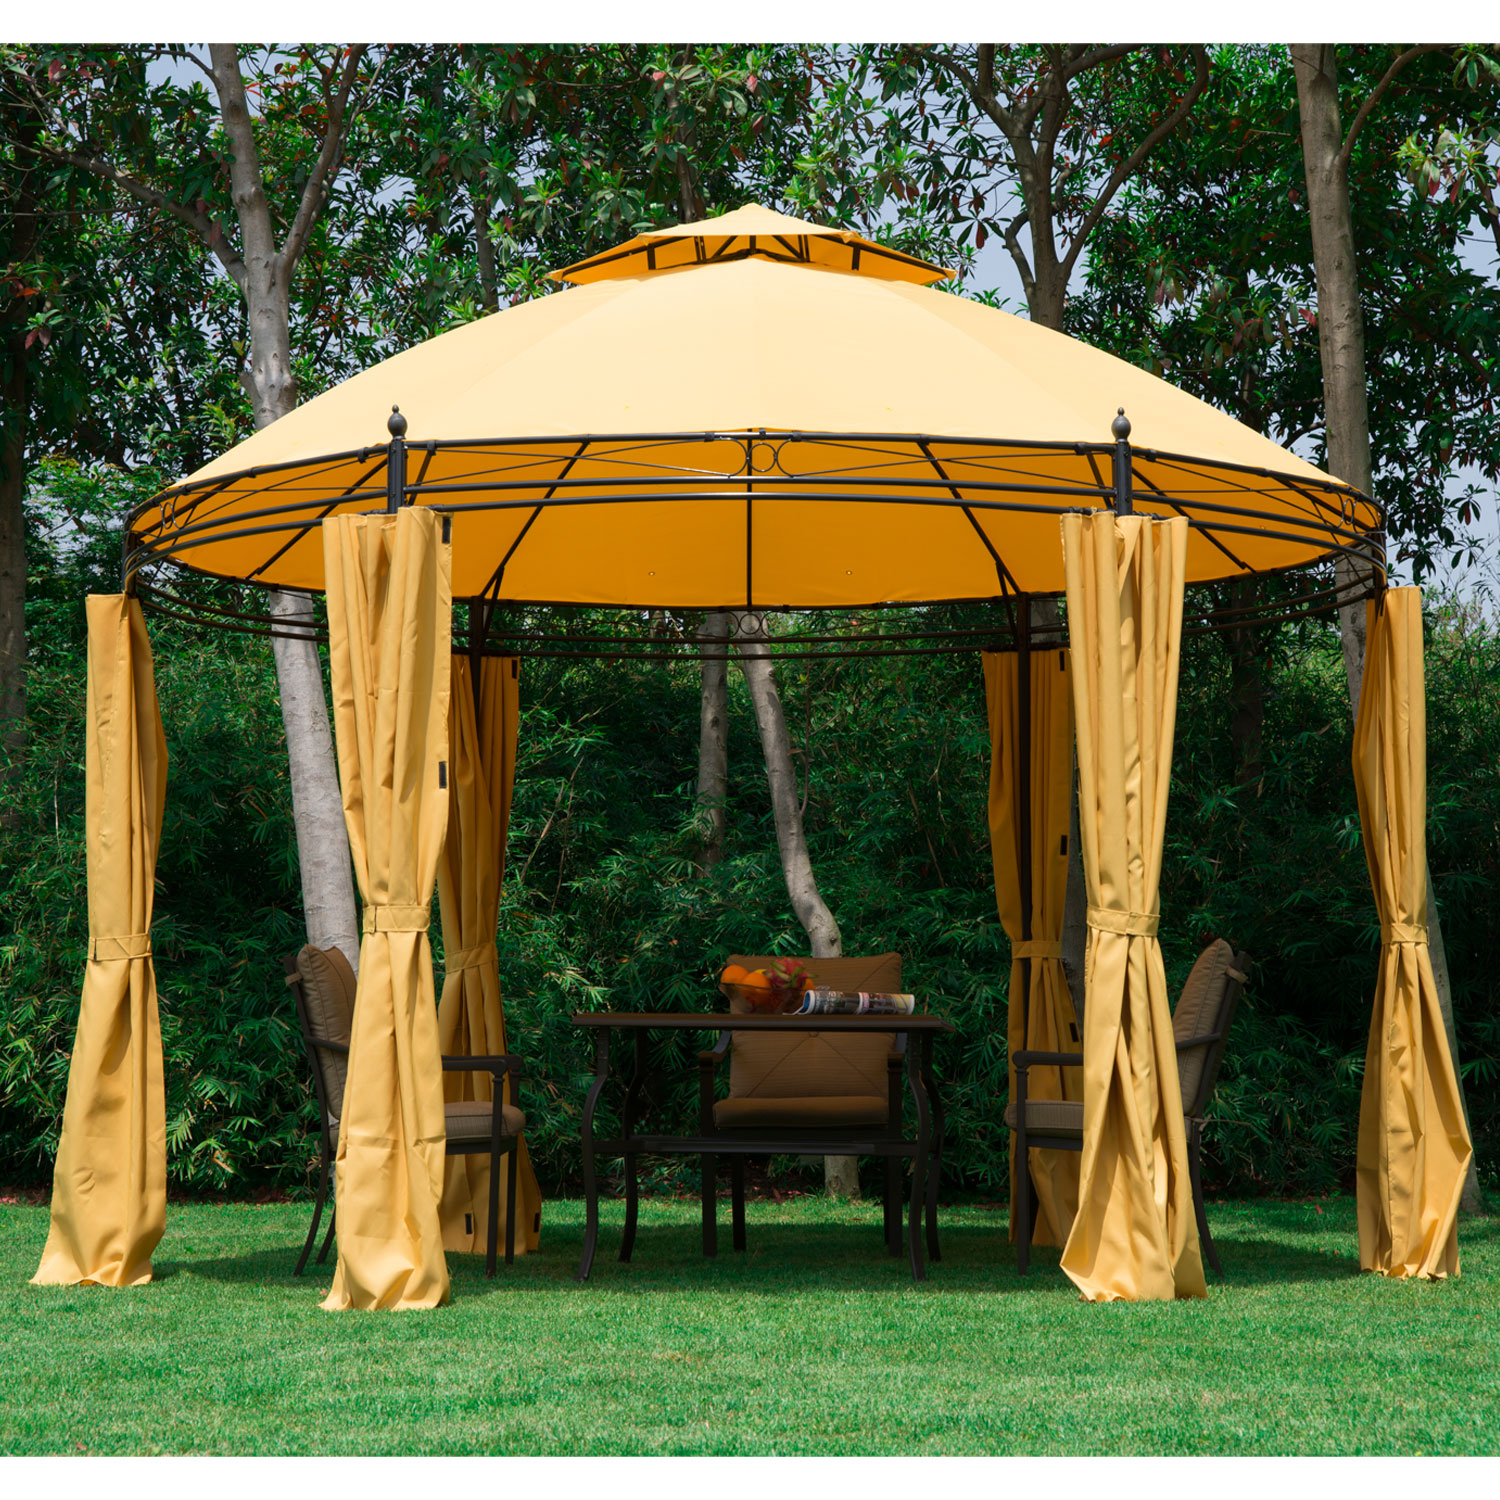 the best attitude d7fd4 e5649 Details about 11.5' Round Dome Patio Gazebo Outdoor Sun Shelter Canopy Tent  Metal Garden Lawn